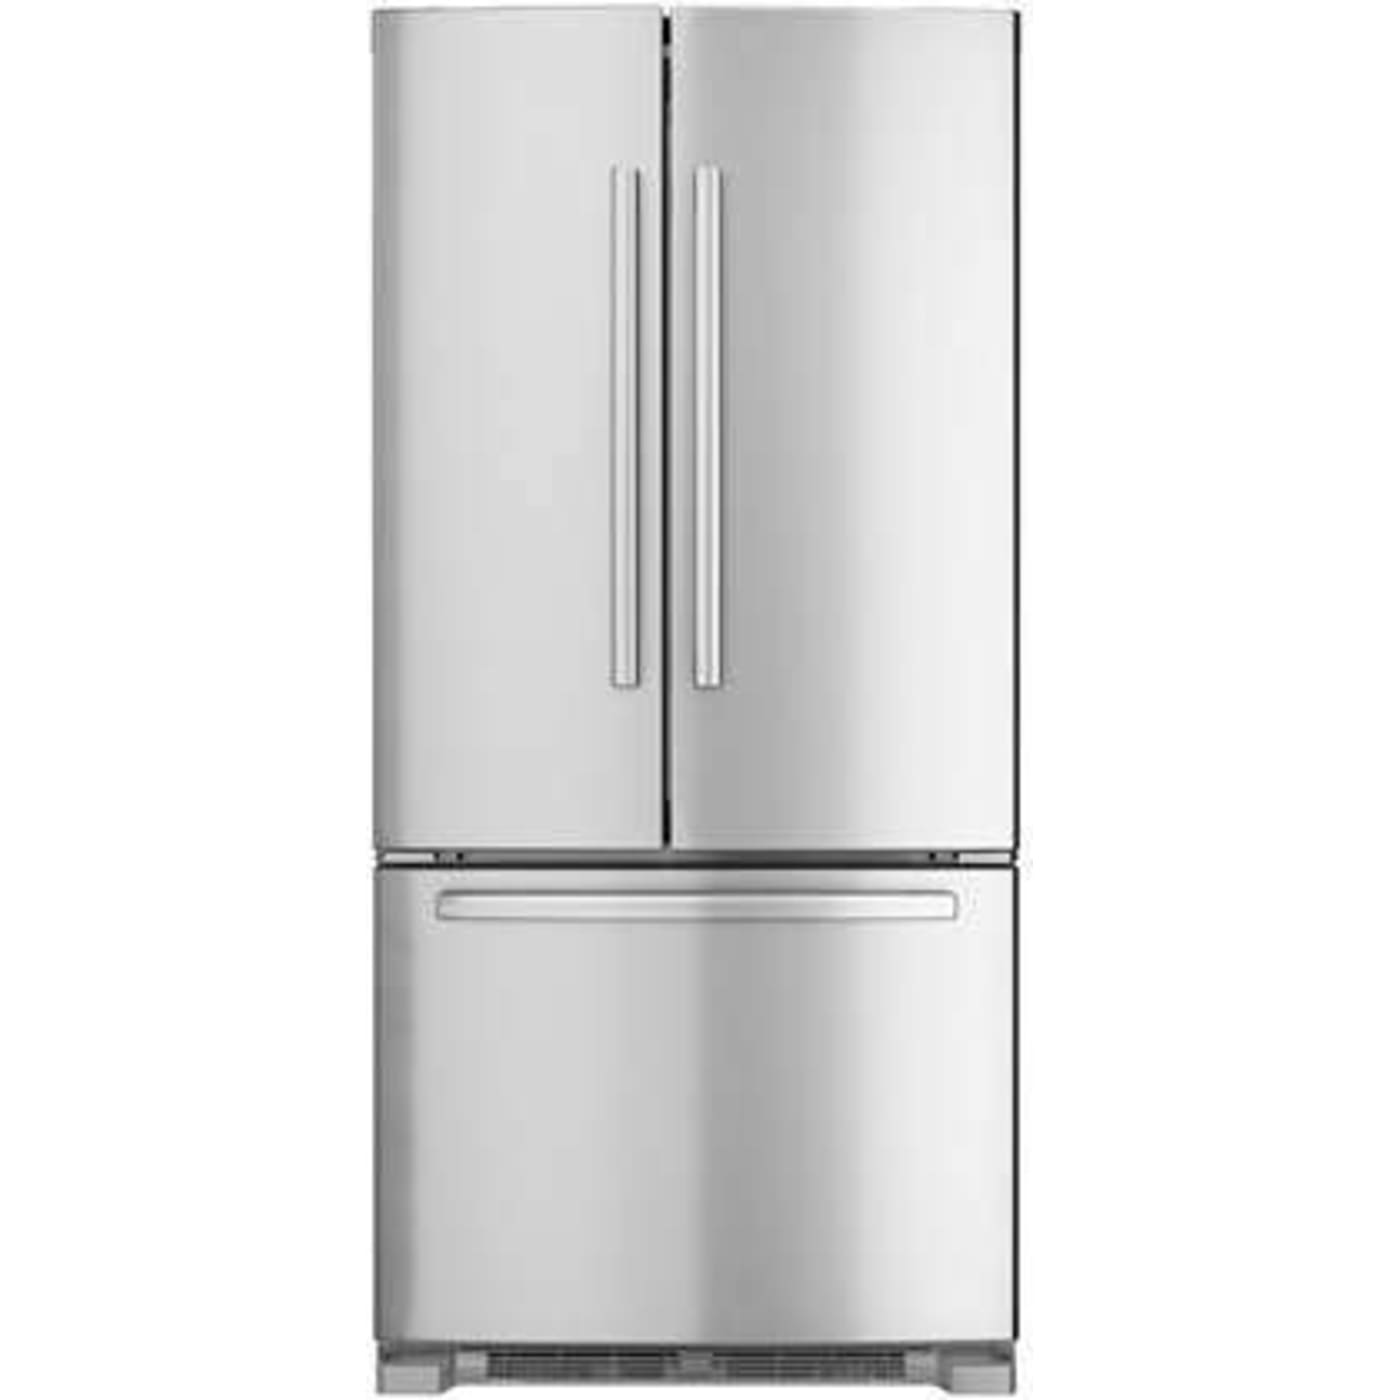 Bosch B22ft80sns 800 Series 219 Cu Ft Stainless Steel French Door